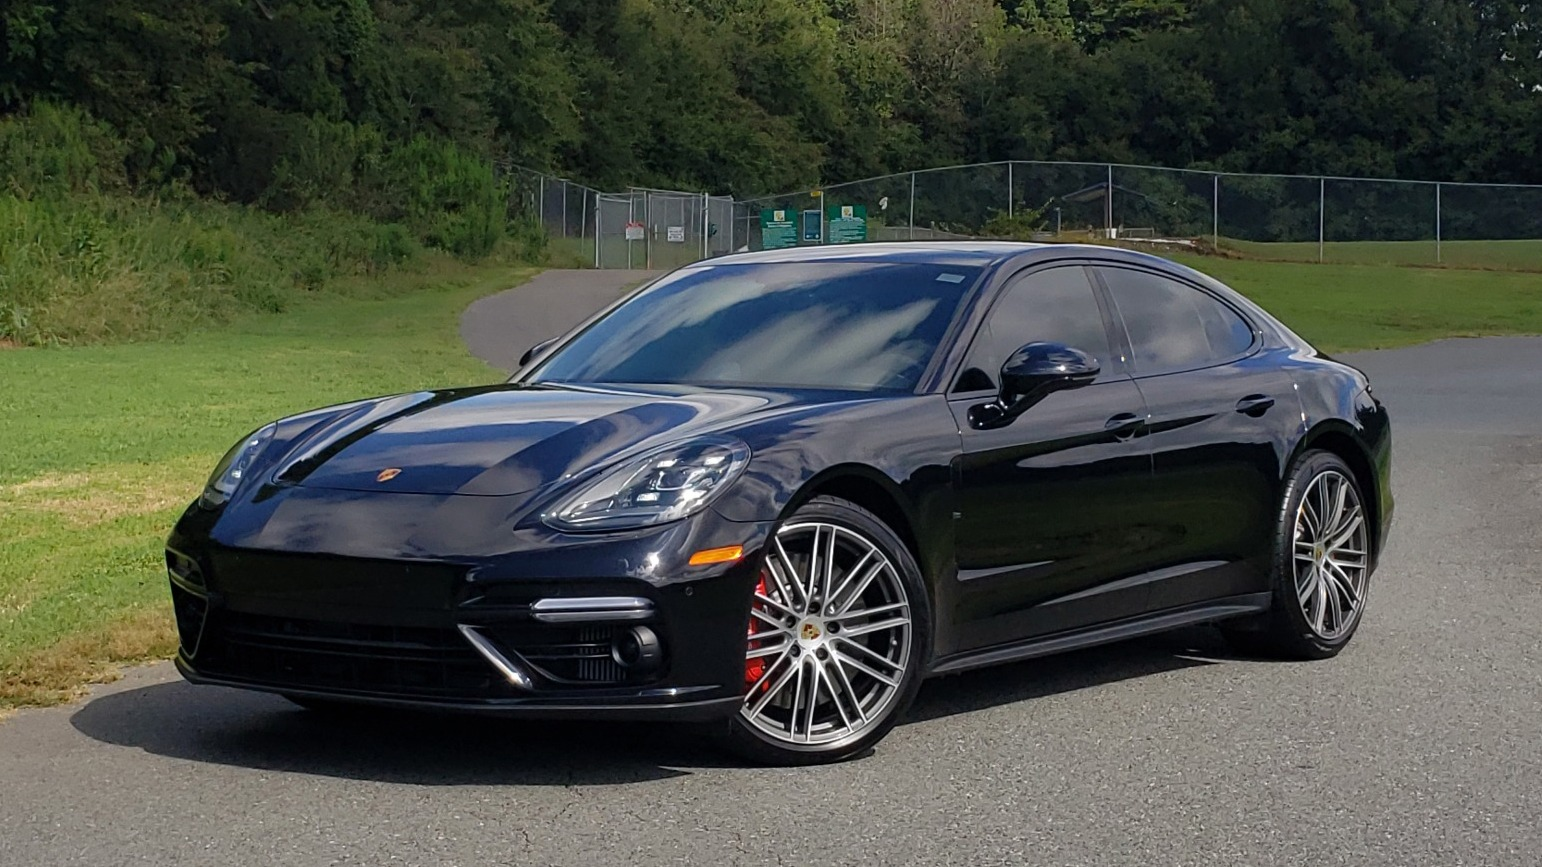 Used 2017 Porsche PANAMERA TURBO AWD / 4.0L V8 / AUTO / NAV / BOSE / REARVIEW / 21IN WHEELS for sale $98,995 at Formula Imports in Charlotte NC 28227 1